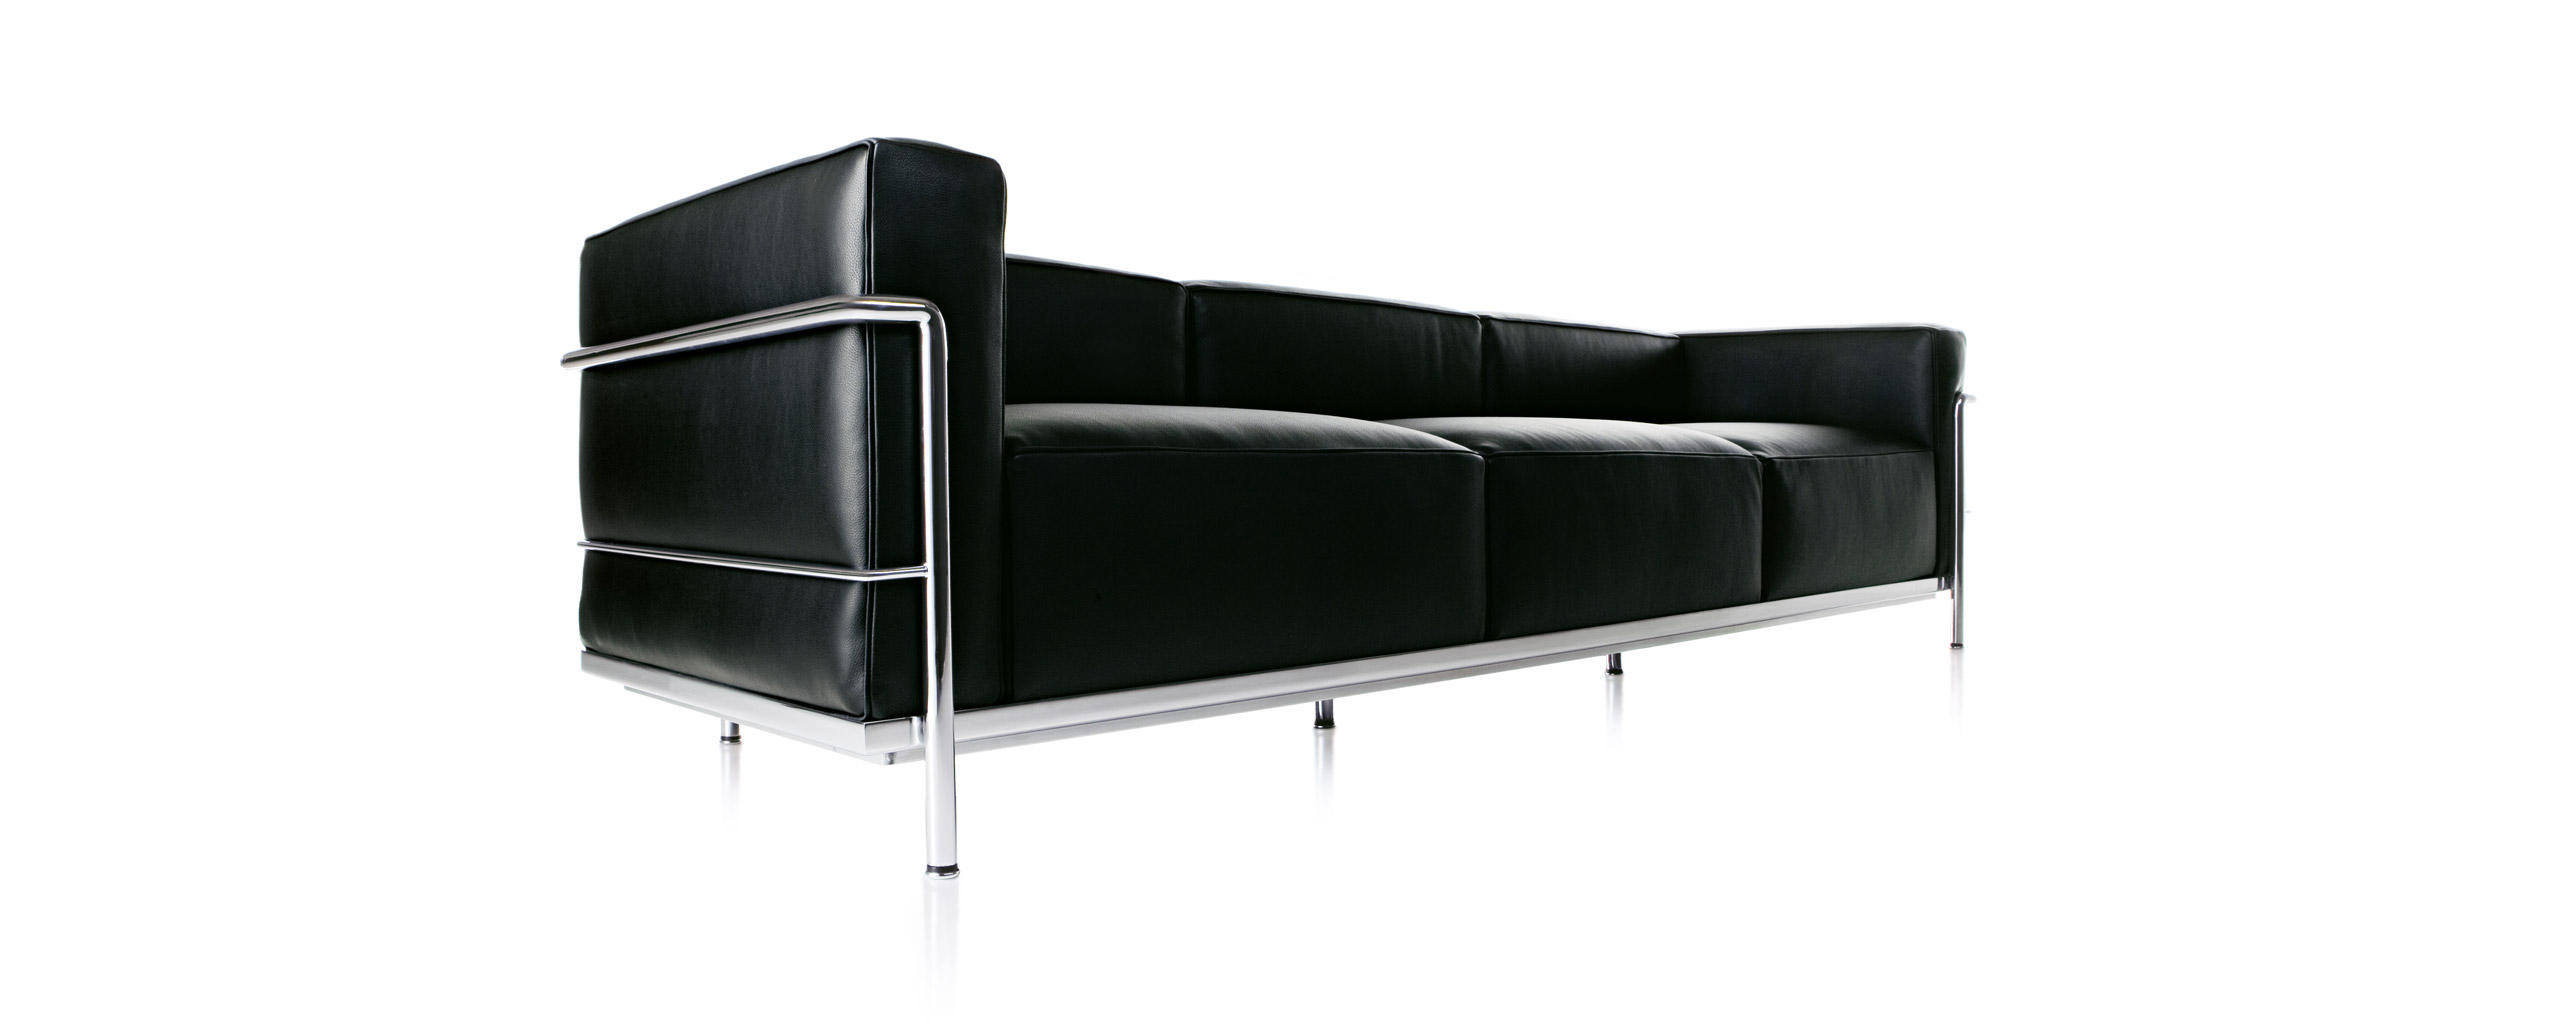 lc3 cassina le corbusier. Black Bedroom Furniture Sets. Home Design Ideas